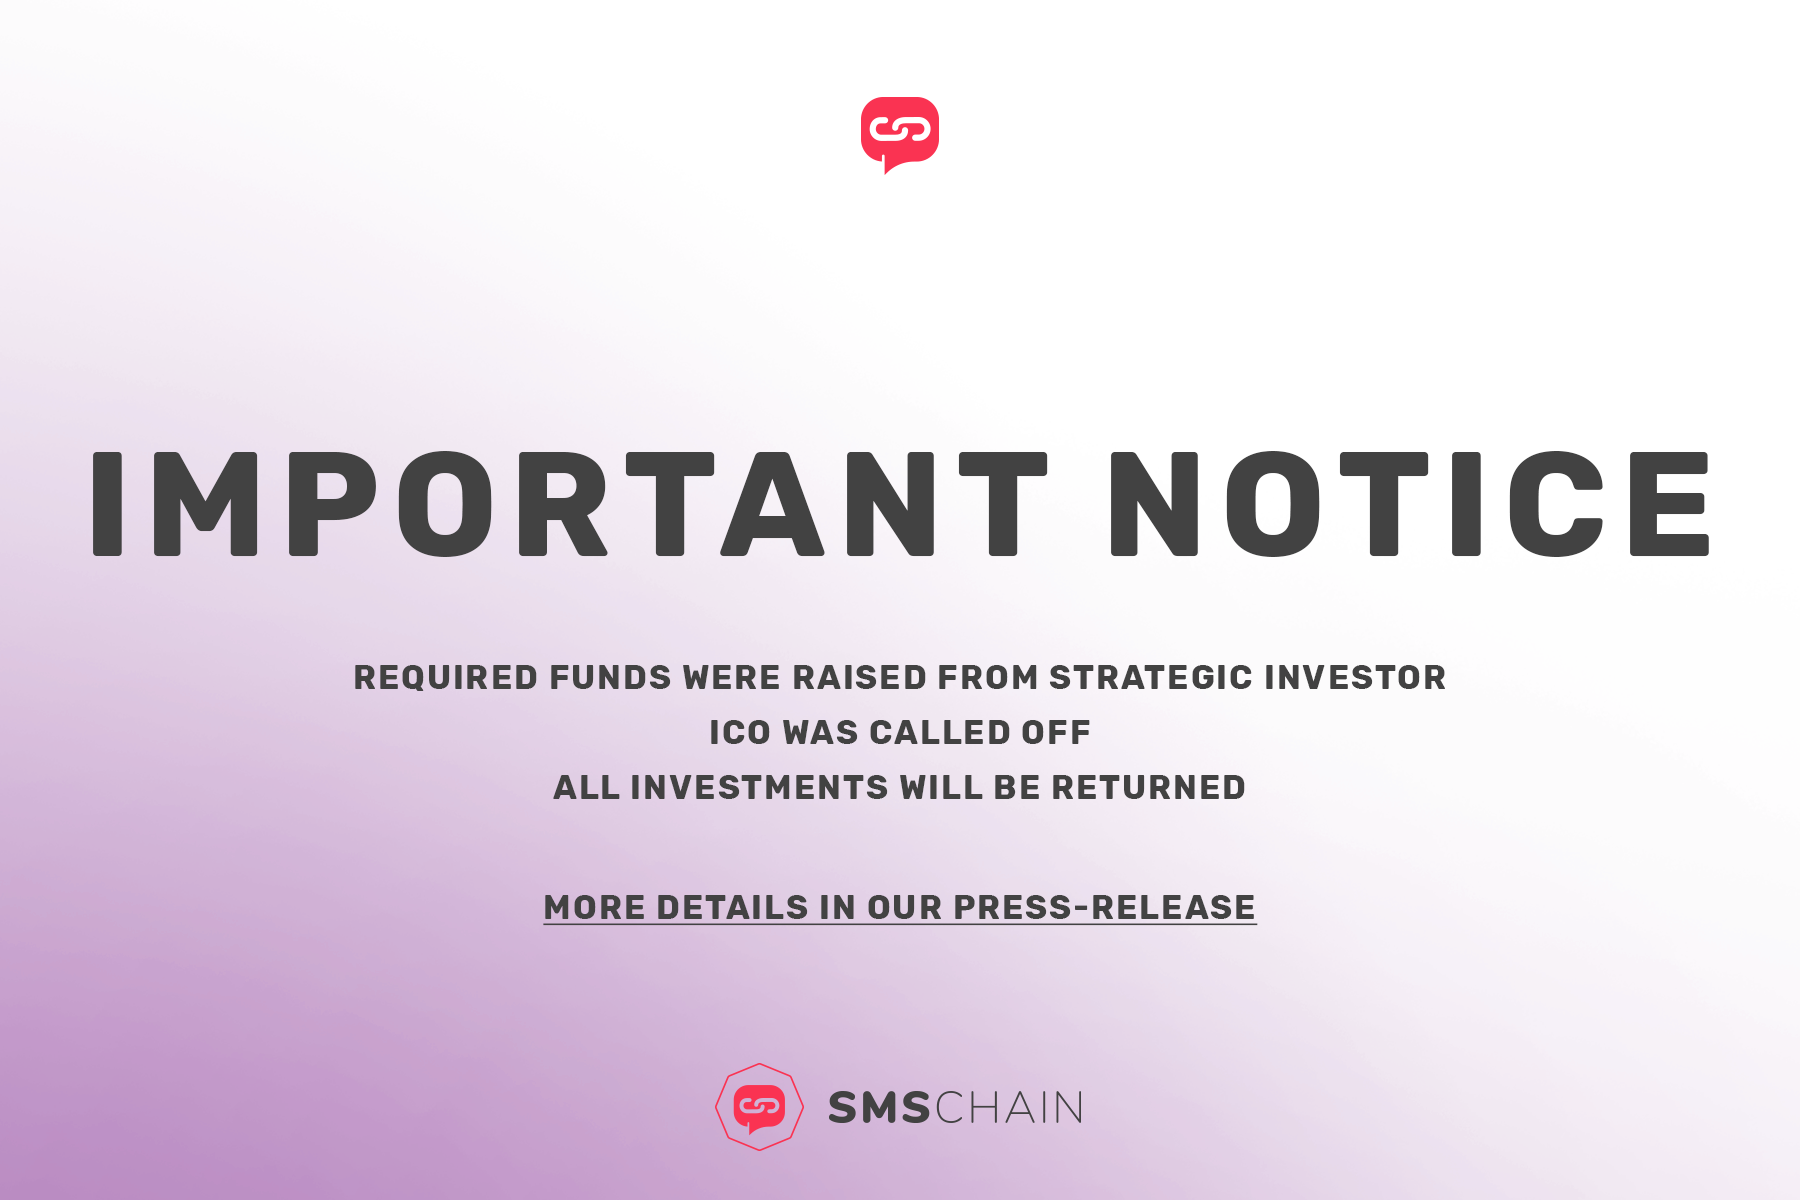 Smschain Announces Its Decision To Call Off Ico Which Has Been